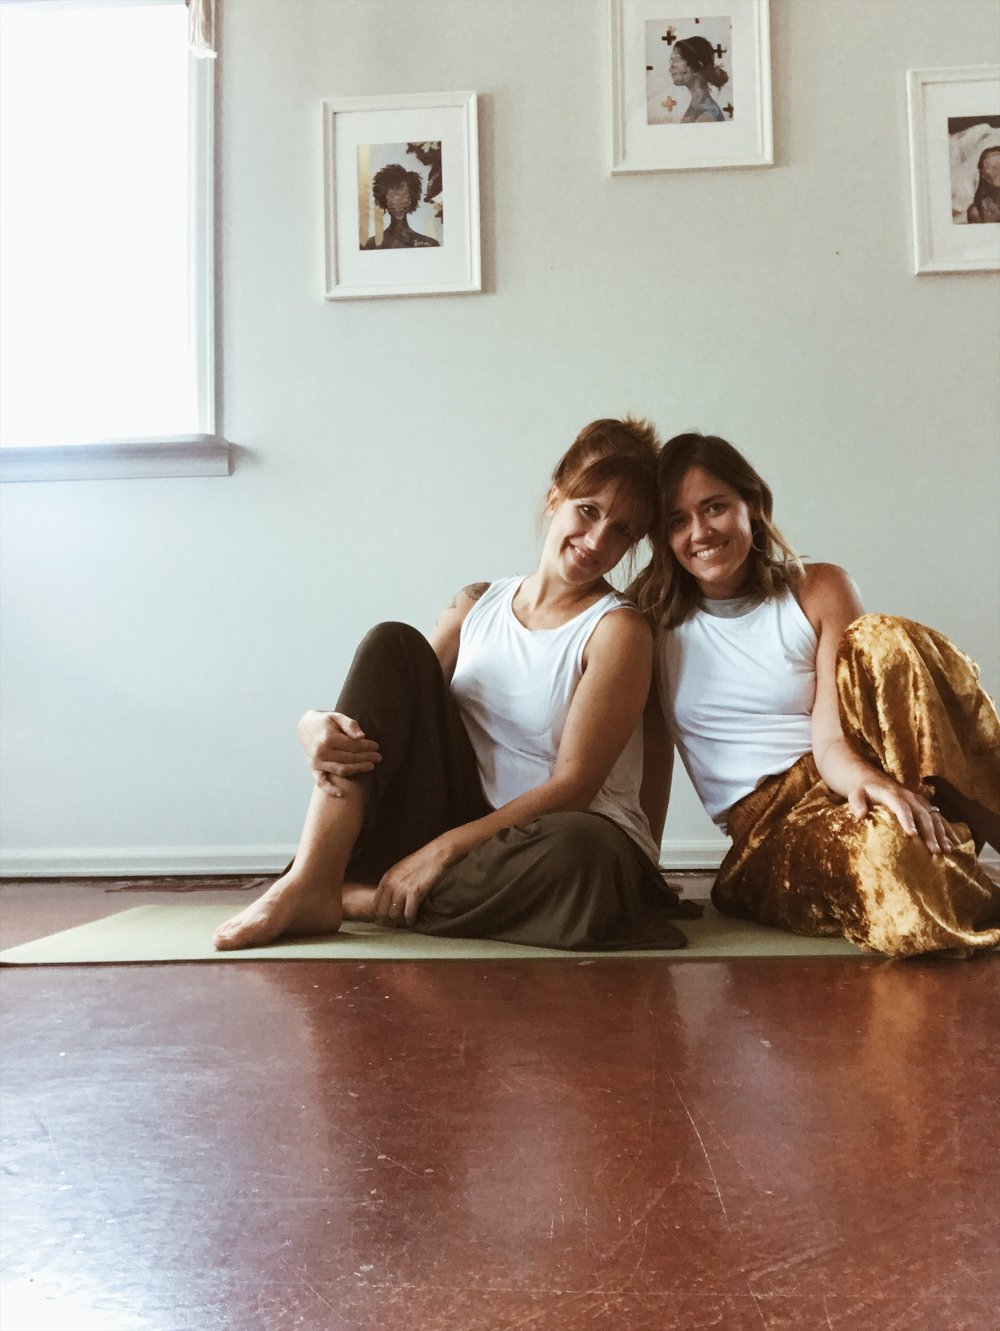 We can't wait to be with you. - We are Abby and Amber, and we're so excited to enjoy this beautiful time together. We have each studied yoga therapy, trauma-informed yoga, and come from a Christ-centered perspective. We are excited to create a safe and sacred environment for you to have some meaningful time of restoration and rest. We have a limited number of spots, so if you're feeling a pull toward doing this, please reserve your spot or reach out if you have any questions at all! We'd love to talk about this and see if it's right for you.